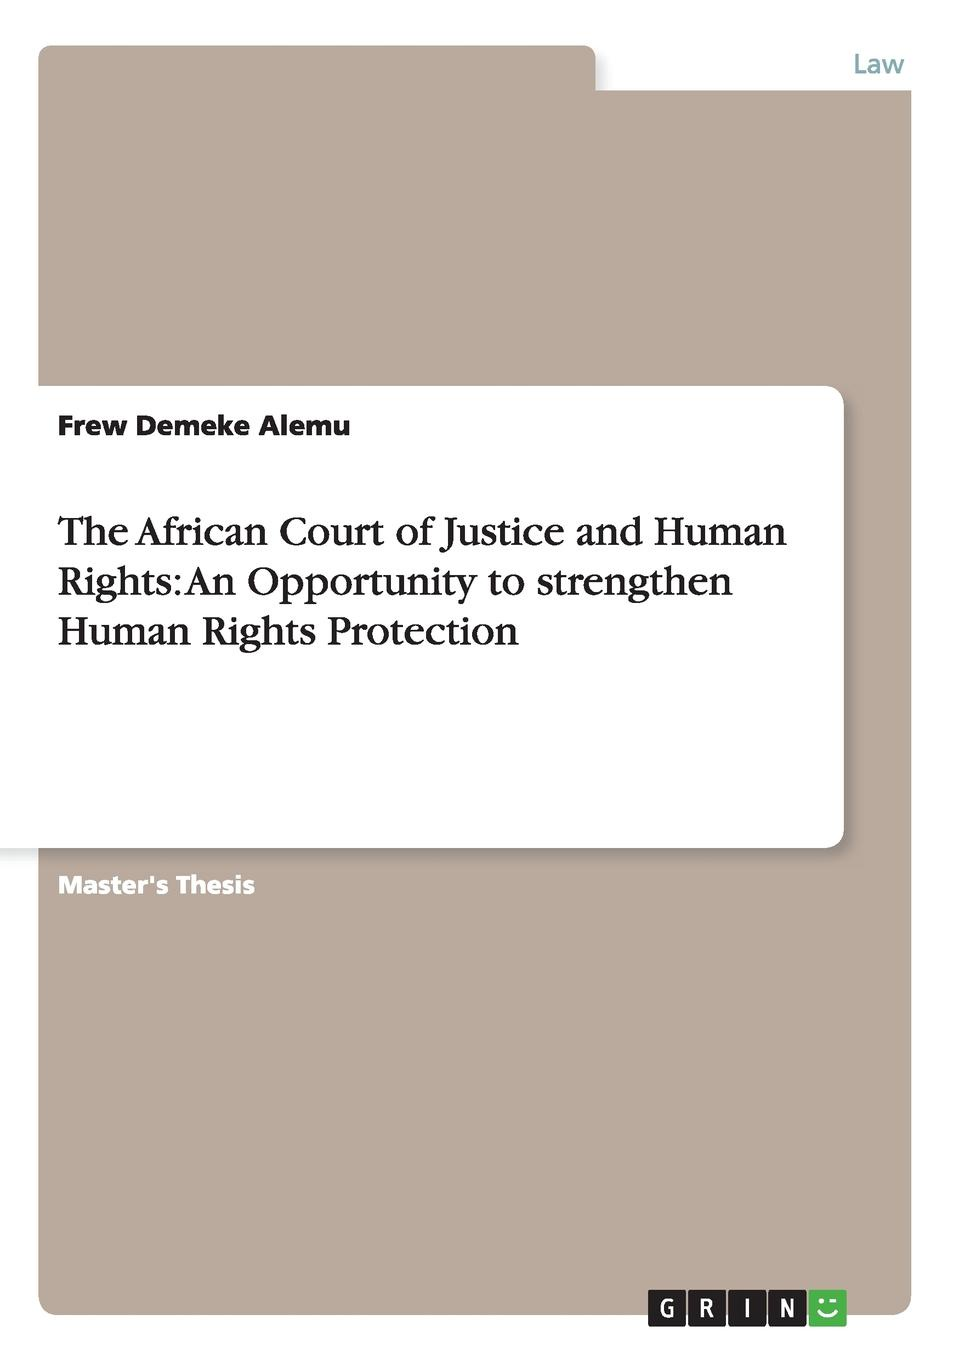 цены на Frew Demeke Alemu The African Court of Justice and Human Rights. An Opportunity to strengthen Human Rights Protection  в интернет-магазинах